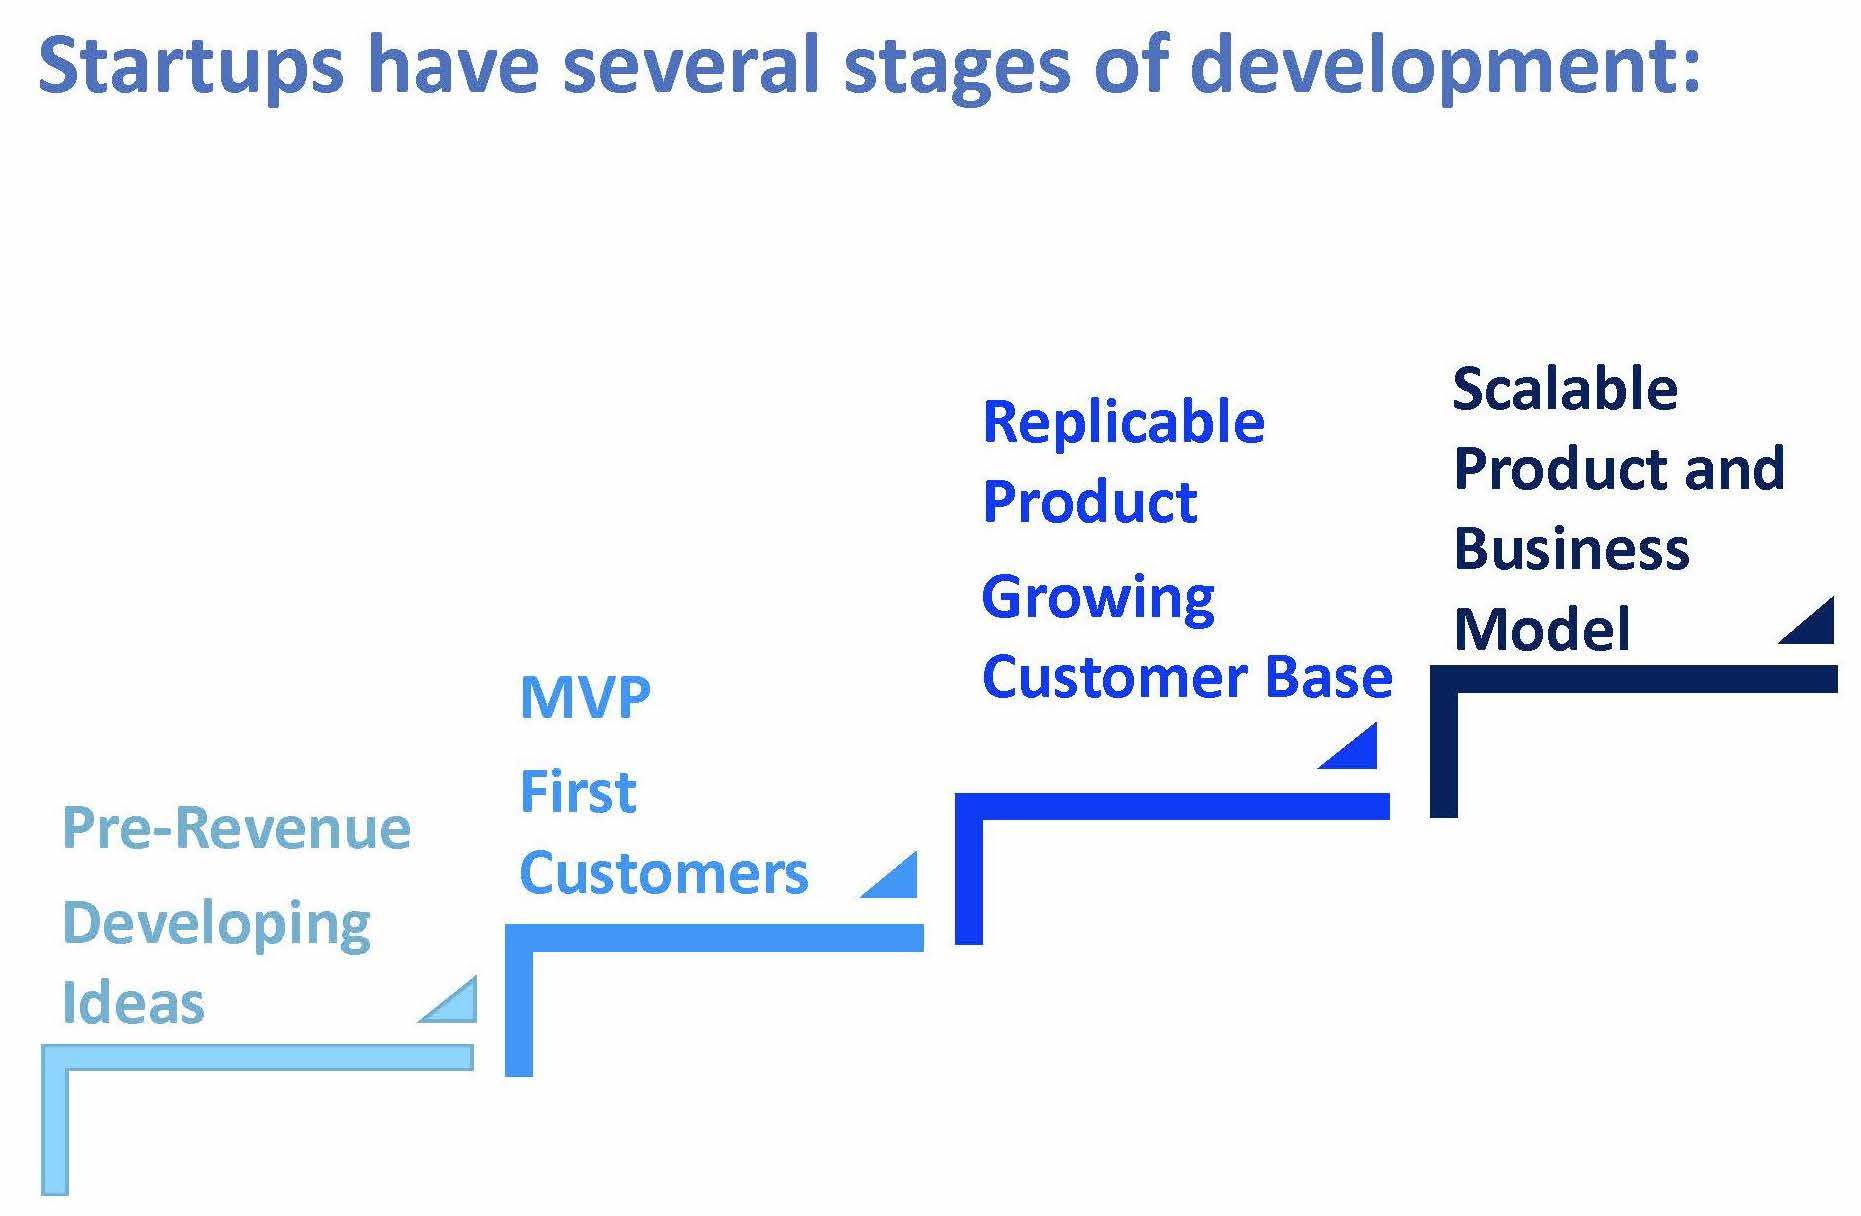 Stages of Startup Development.jpg